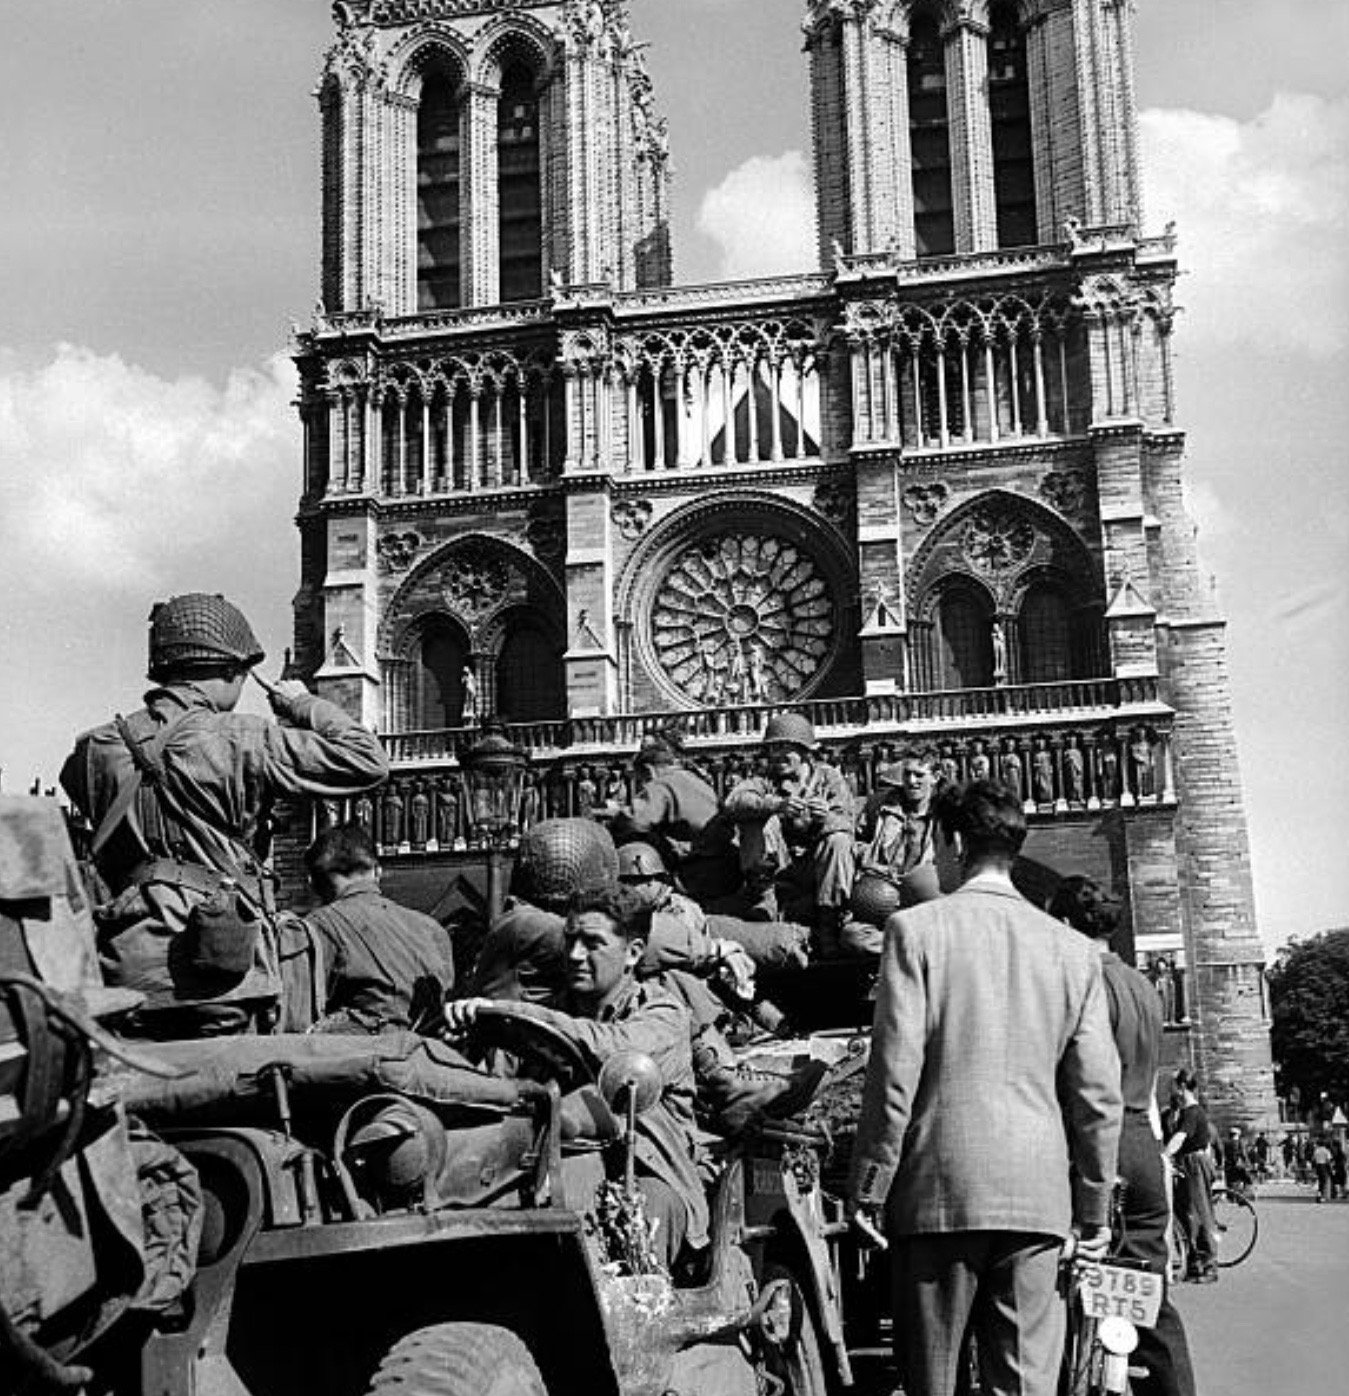 American soldiers at Notre Dame, August 1944, during liberation of Paris, World War II:      #Getty https://t.co/KLiVX60nTx